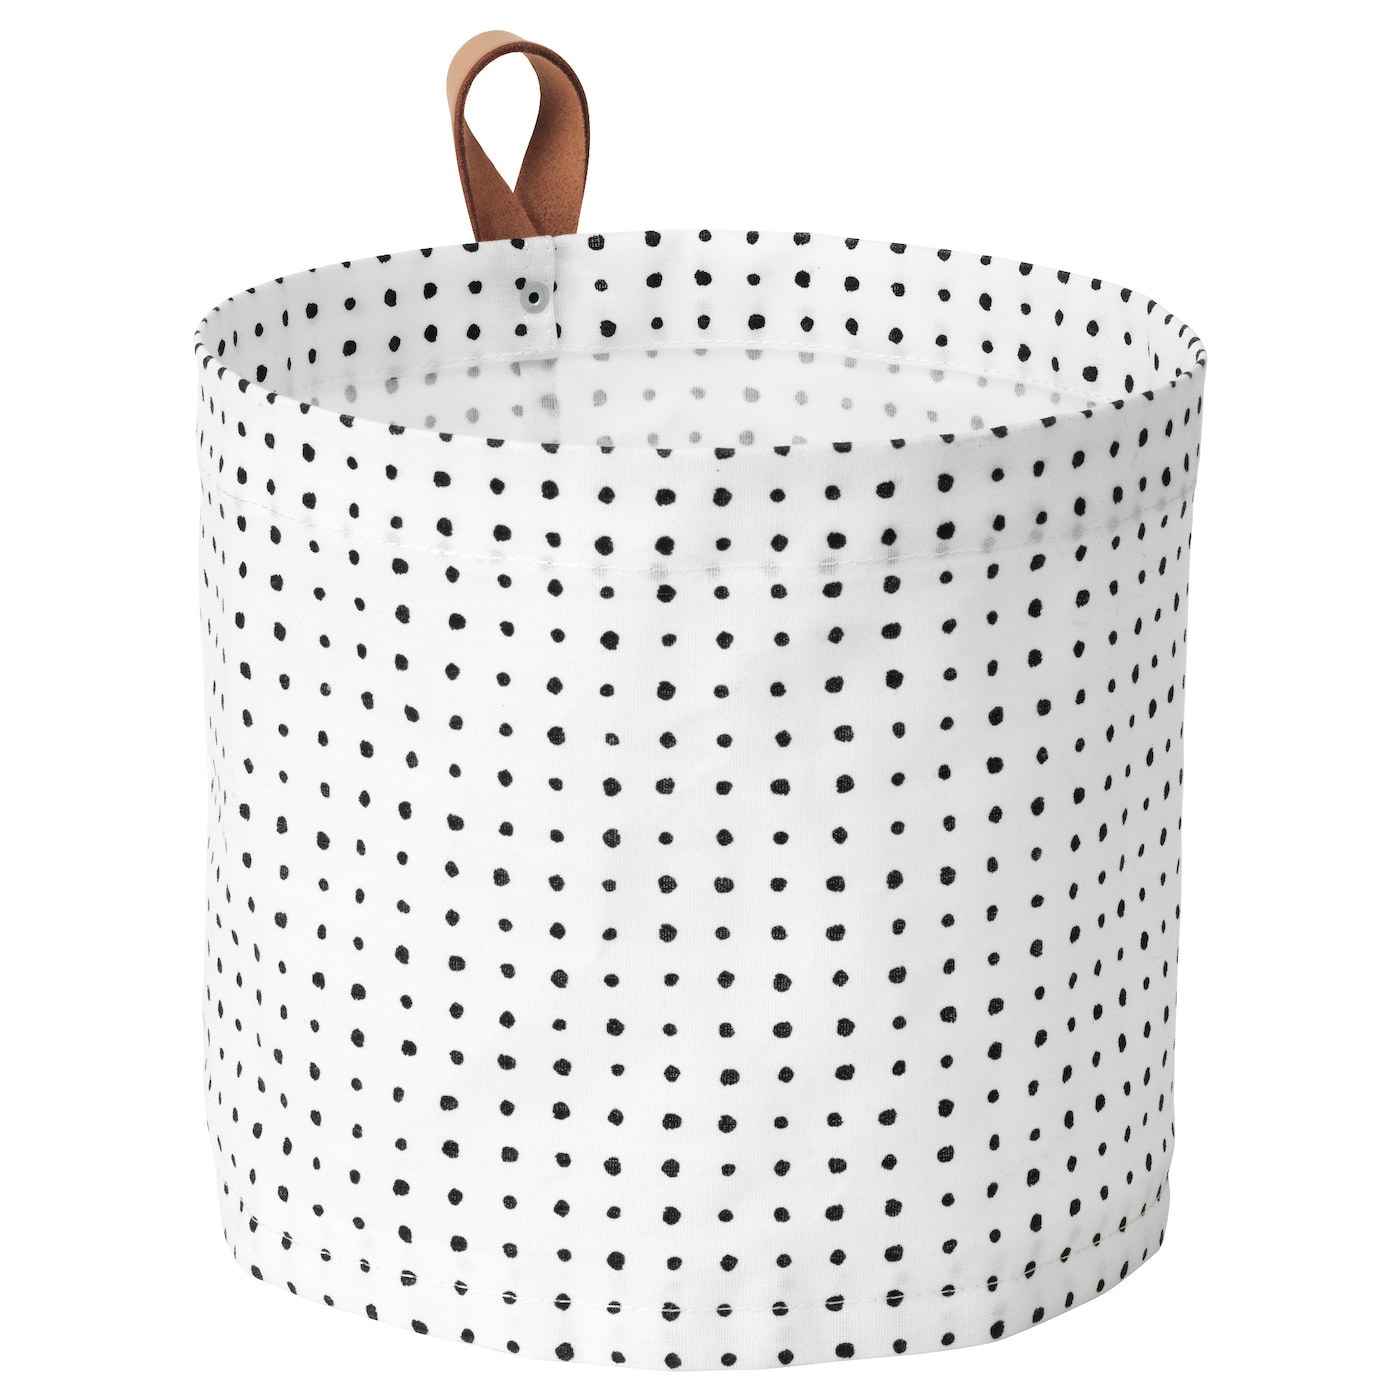 IKEA PLUMSA storage basket The plastic coating on the inside protects against moisture.